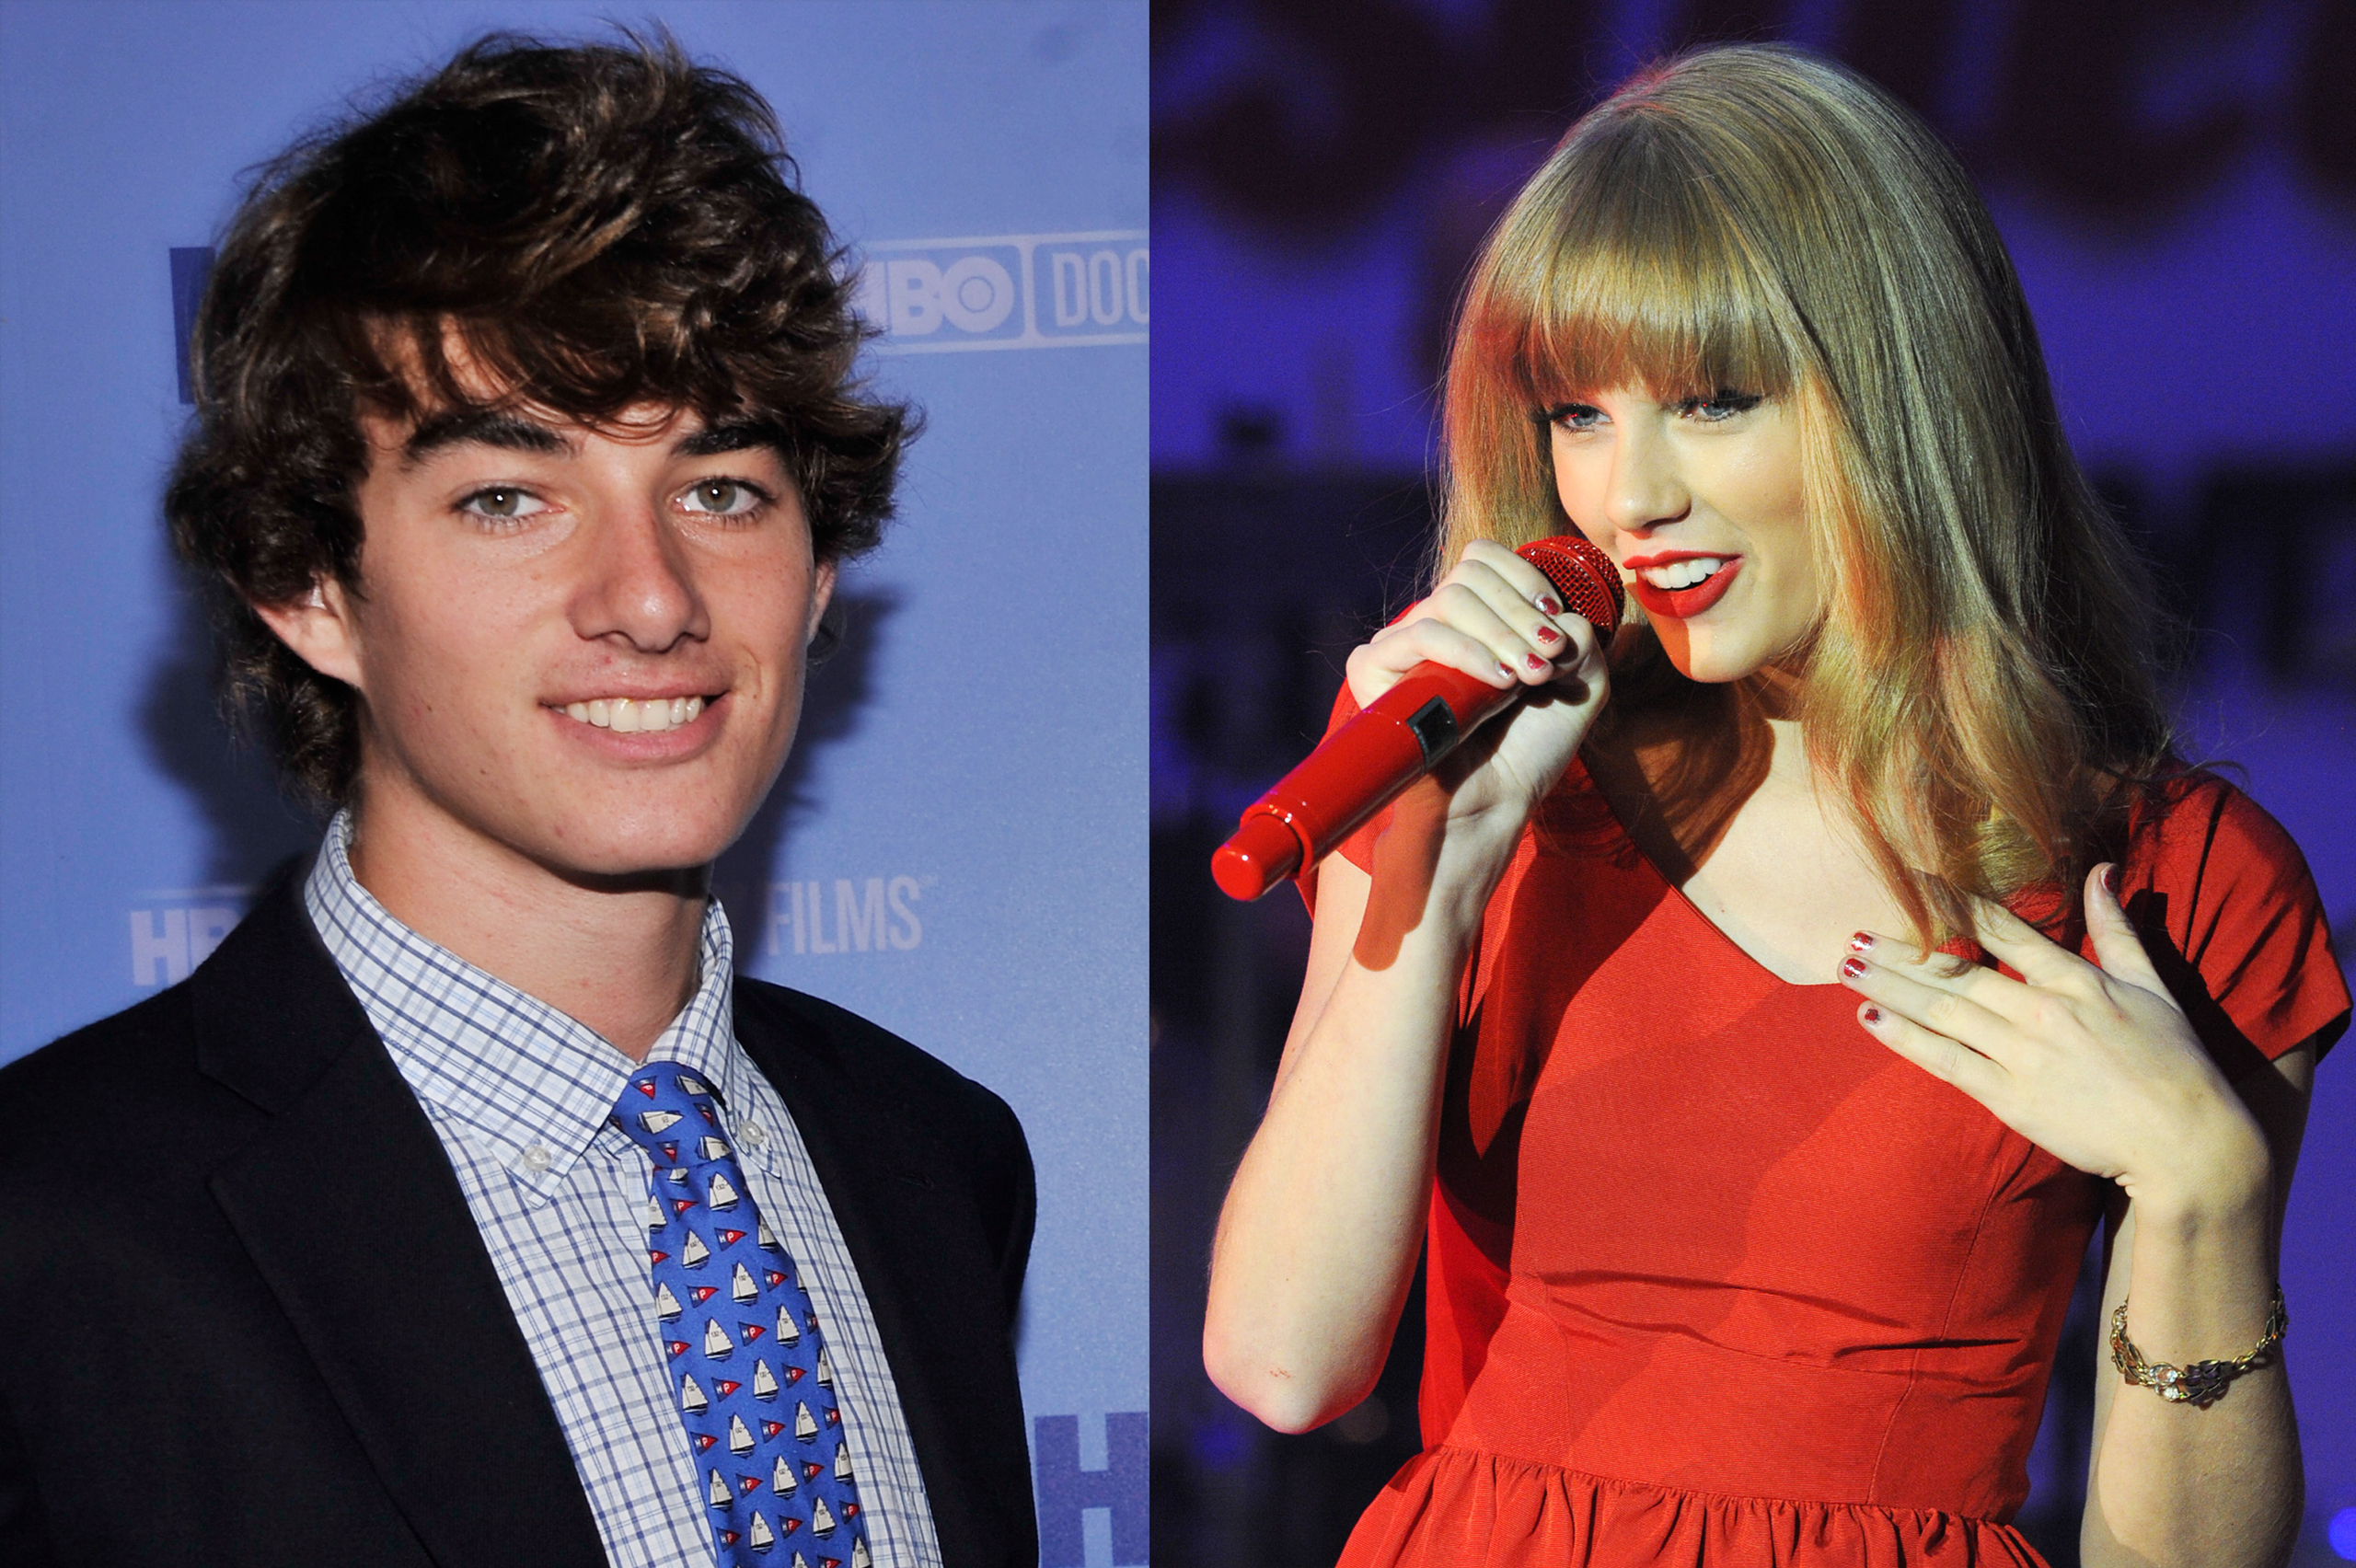 Taylor Swift performs at the switch on of the 2012 Christmas lights at Westfield in London on Nov. 6, 2012; Conor Kennedy attends the  Ethel  New York Premiere at the Time Warner Center in New York on Oct. 15, 2012.